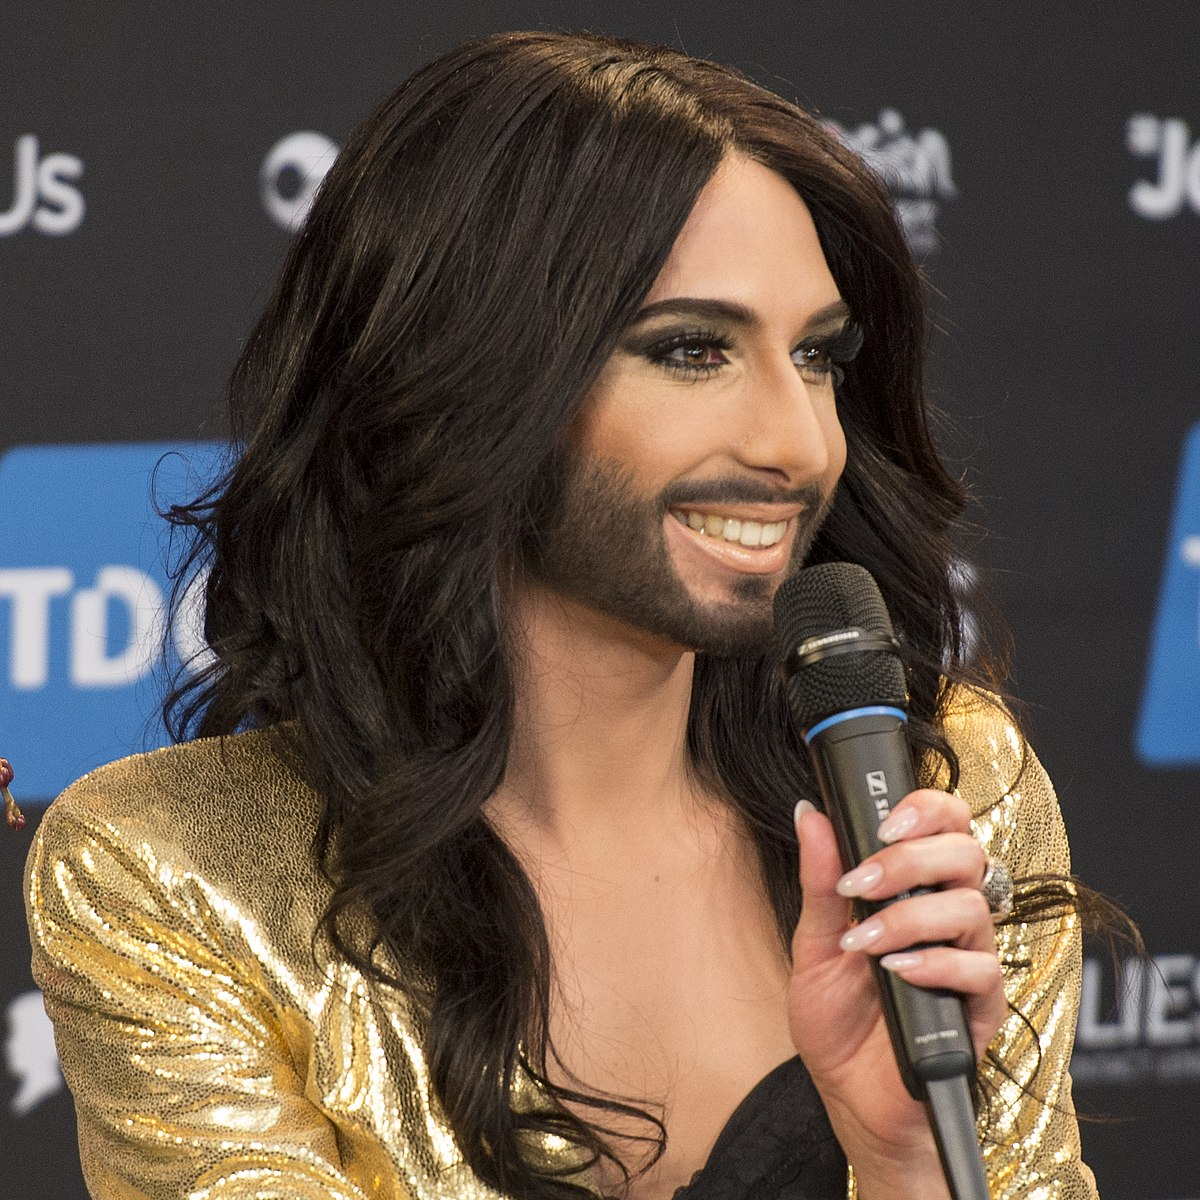 Conchita wurst and dana international in eurovision first star - Conchita Wurst And Dana International In Eurovision First Star 2